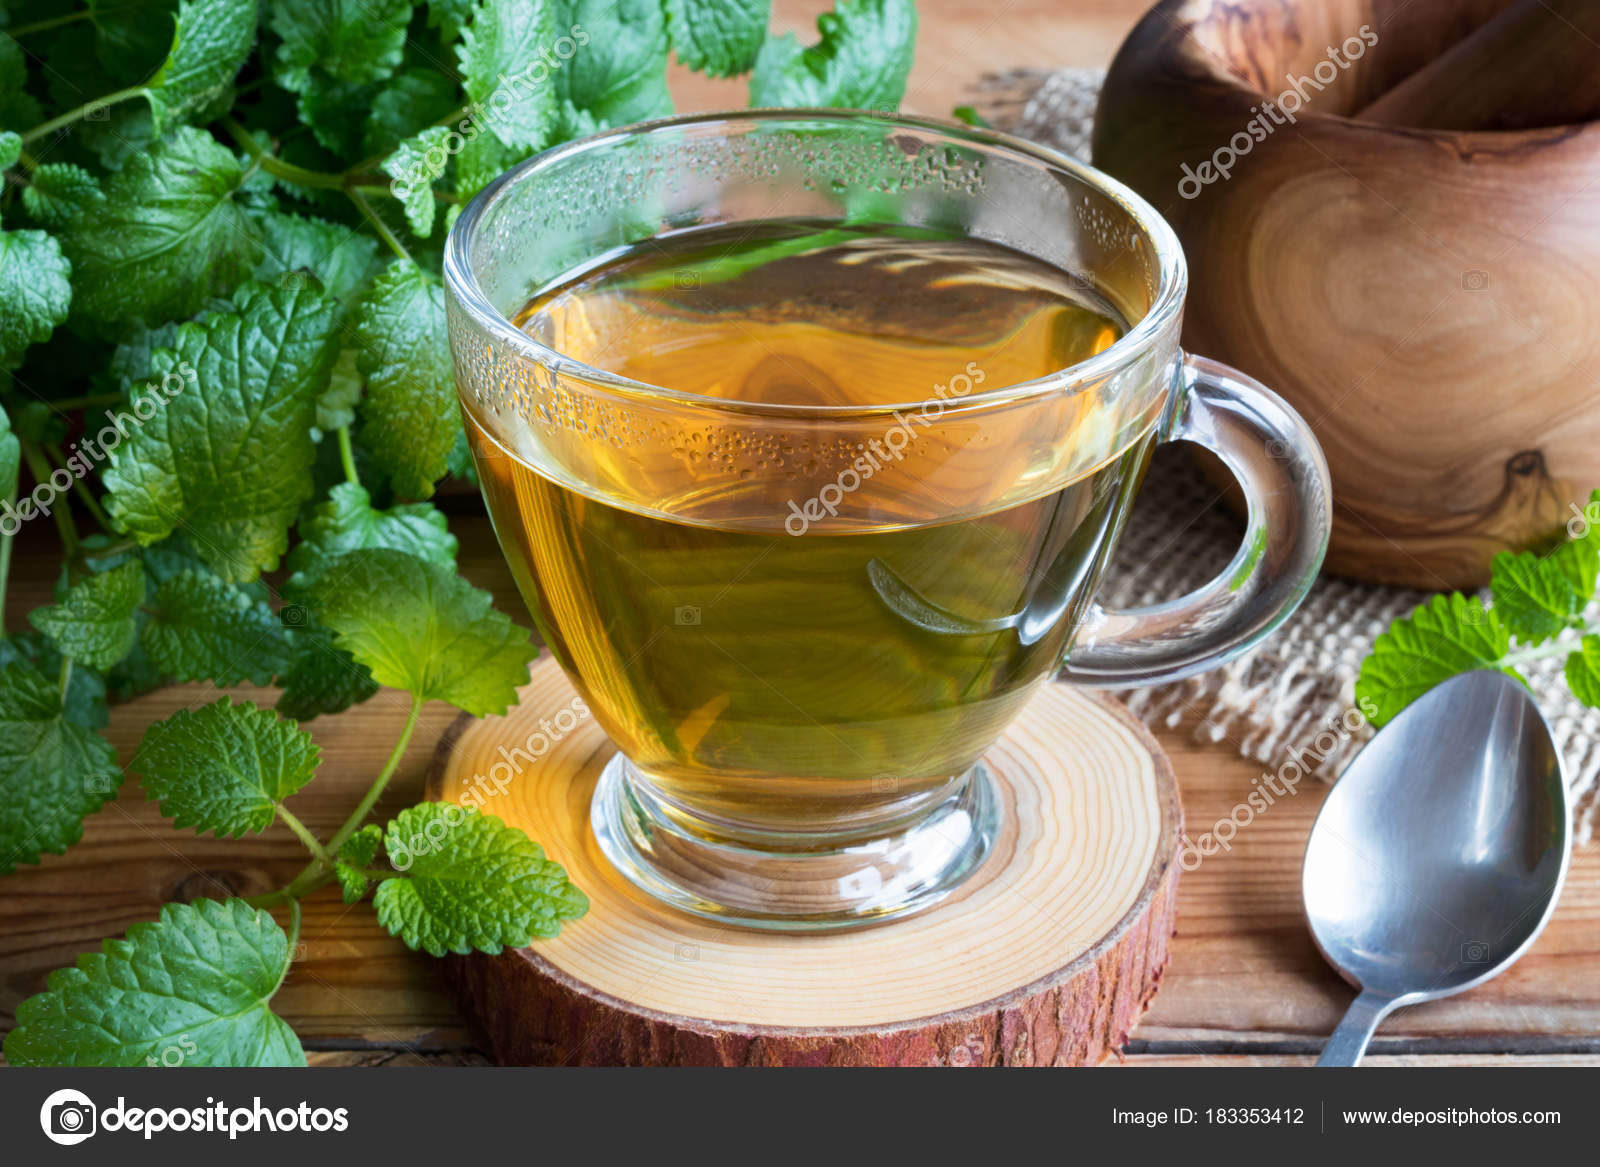 Is it possible to drink melissa tea during pregnancy 27